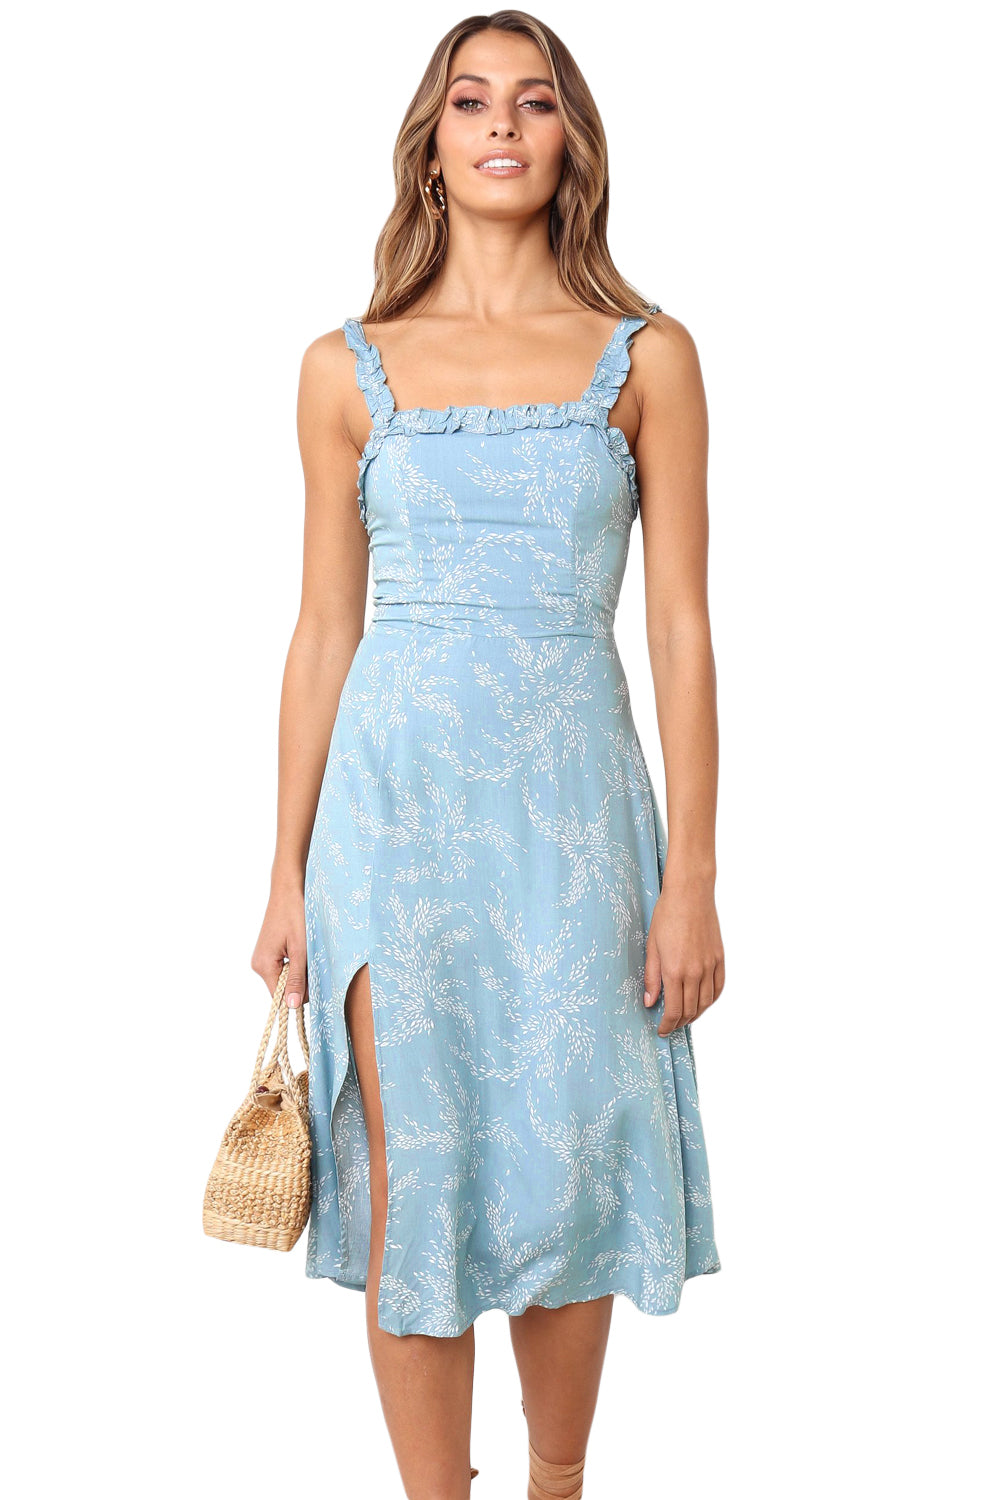 Sky Blue Botanical Print Dress